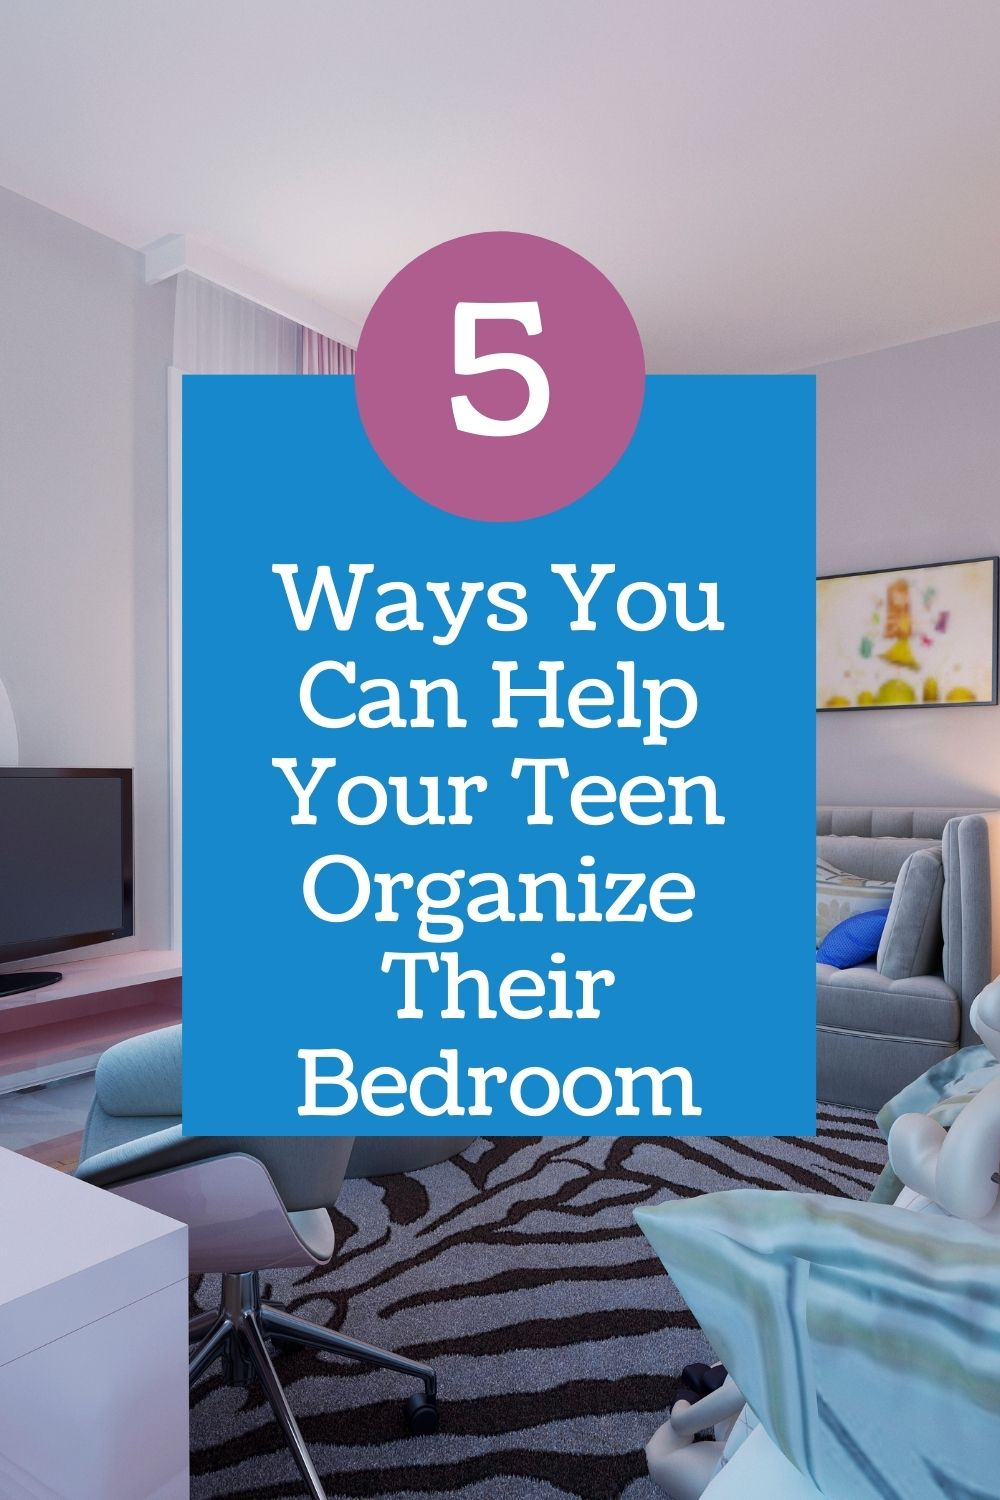 Ways You Can Help Your Teen Organize Their Bedroom